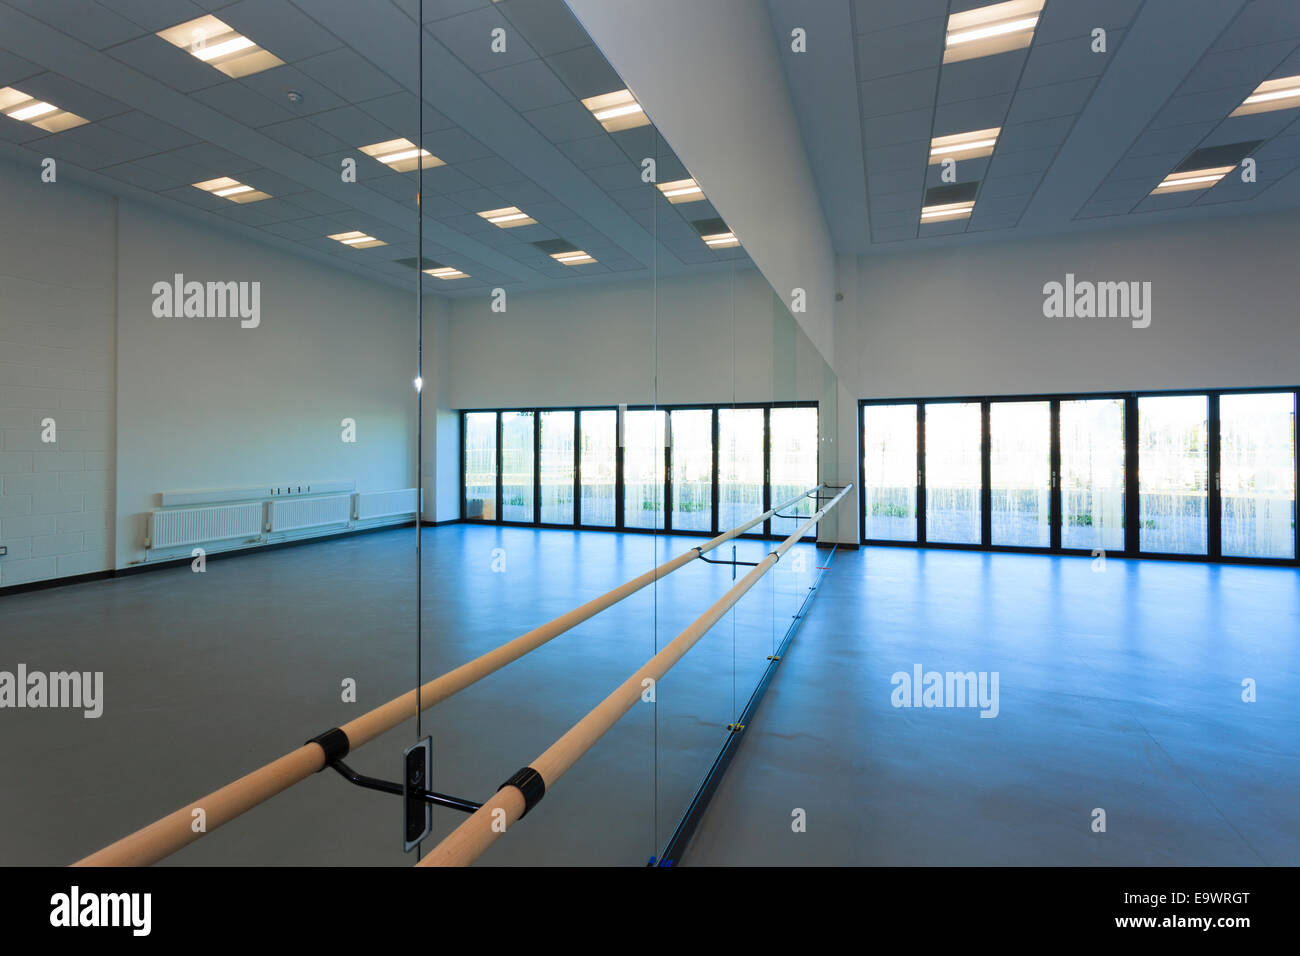 unoccupied dance studio with mirrors and ballet barre